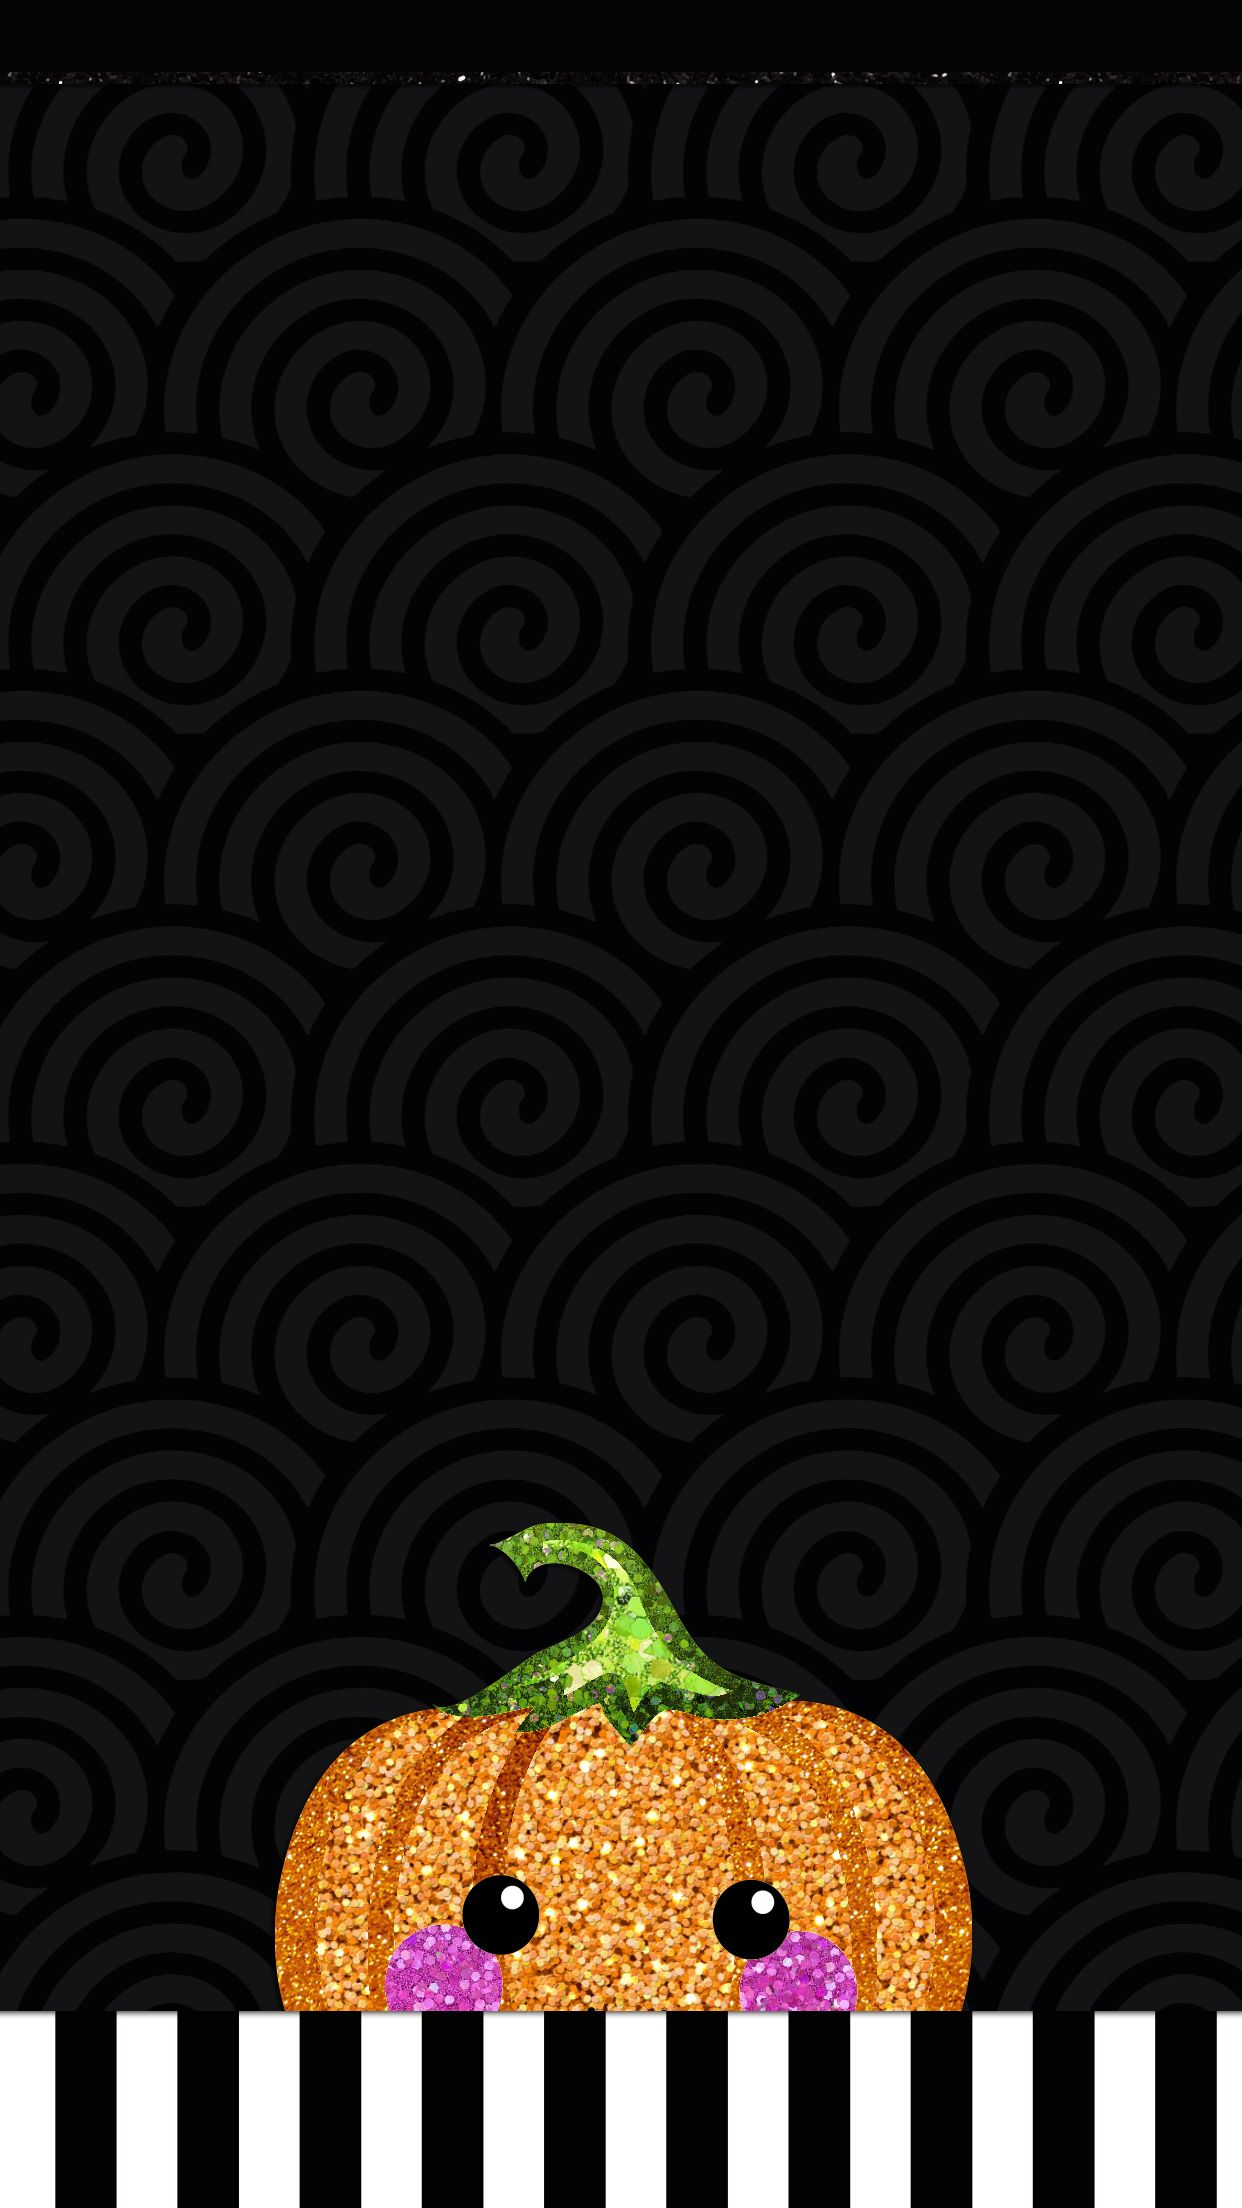 Iphone Wall Halloween Tjn Halloween Wallpaper Iphone Cellphone Wallpaper Phone Wallpaper